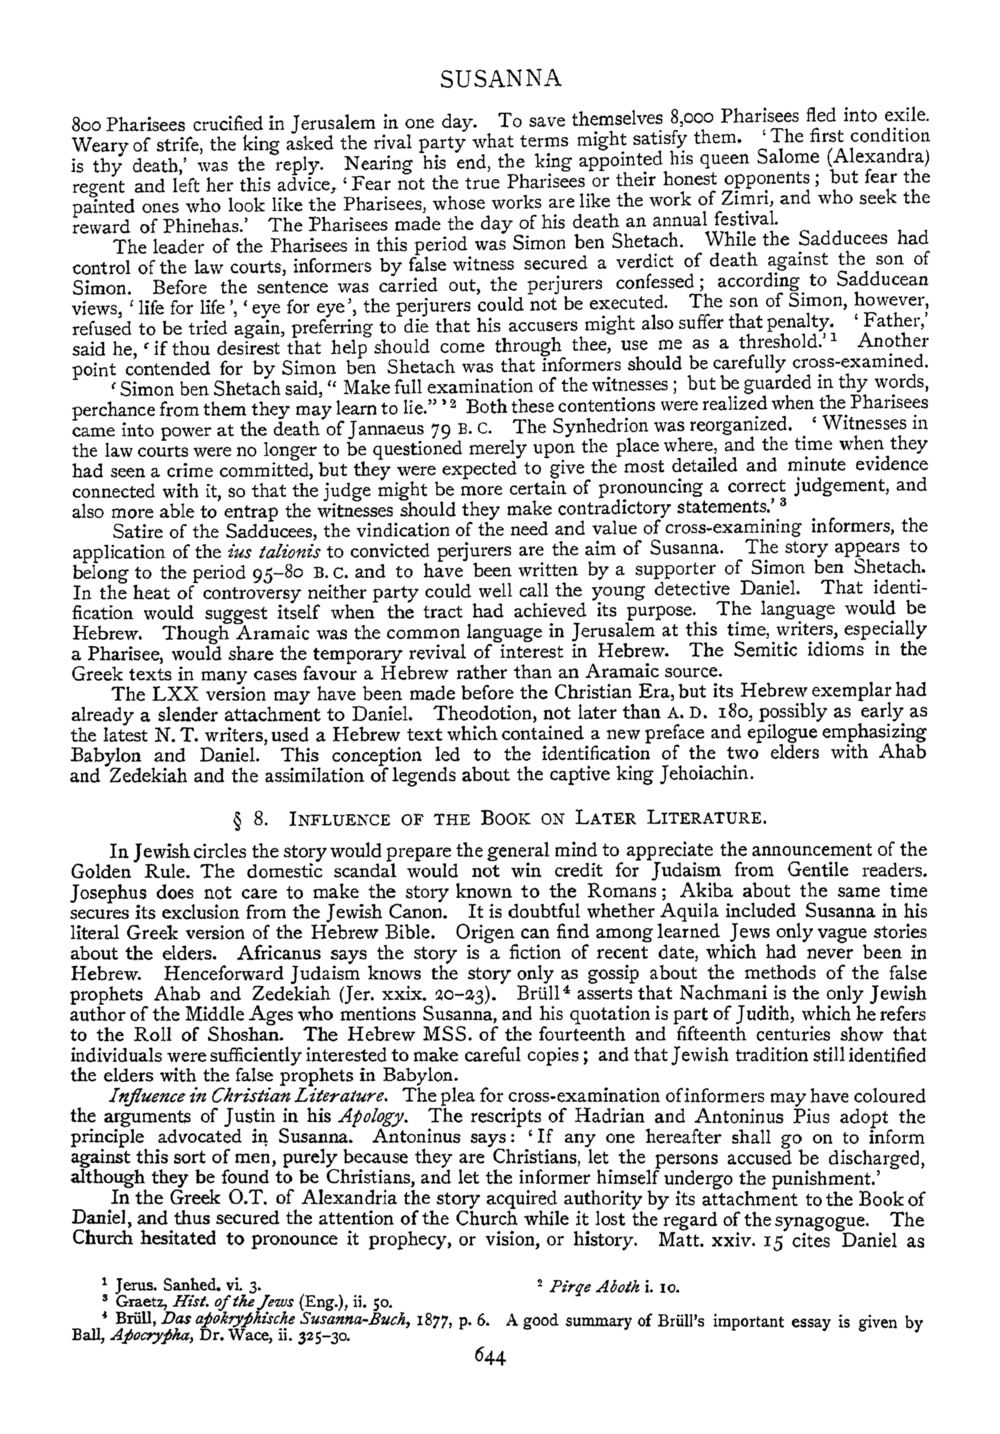 Image of page 644